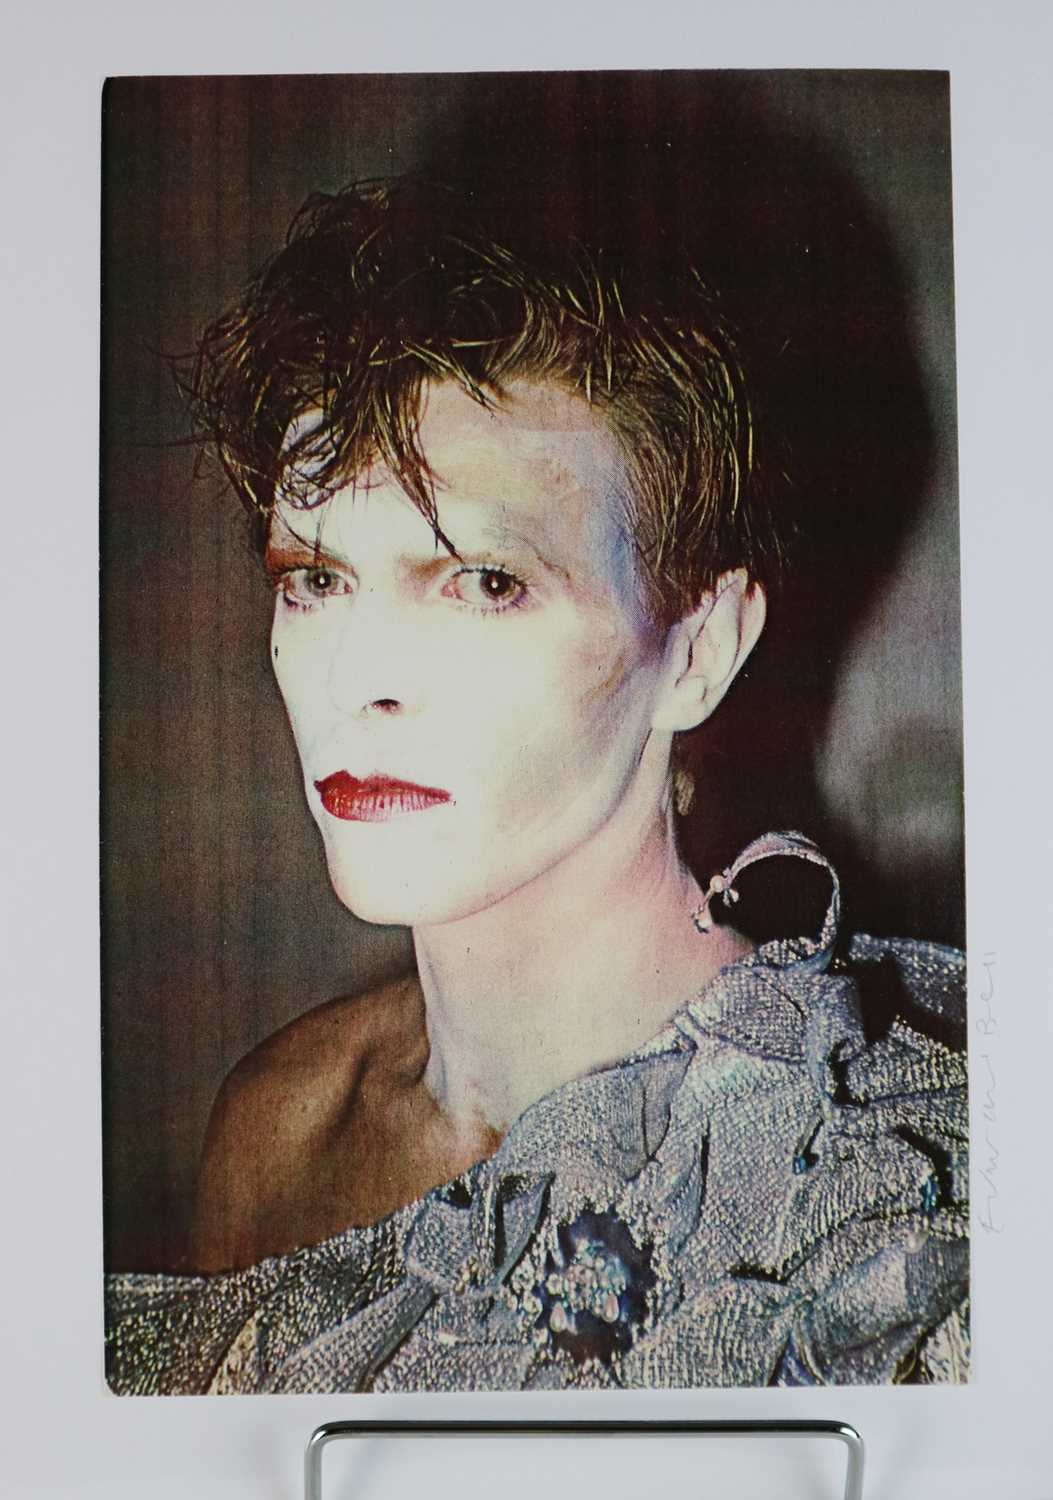 Edward Bell (British Contemporary) Colour Print Bowie in Scary Monsters Makeup - Image 2 of 6